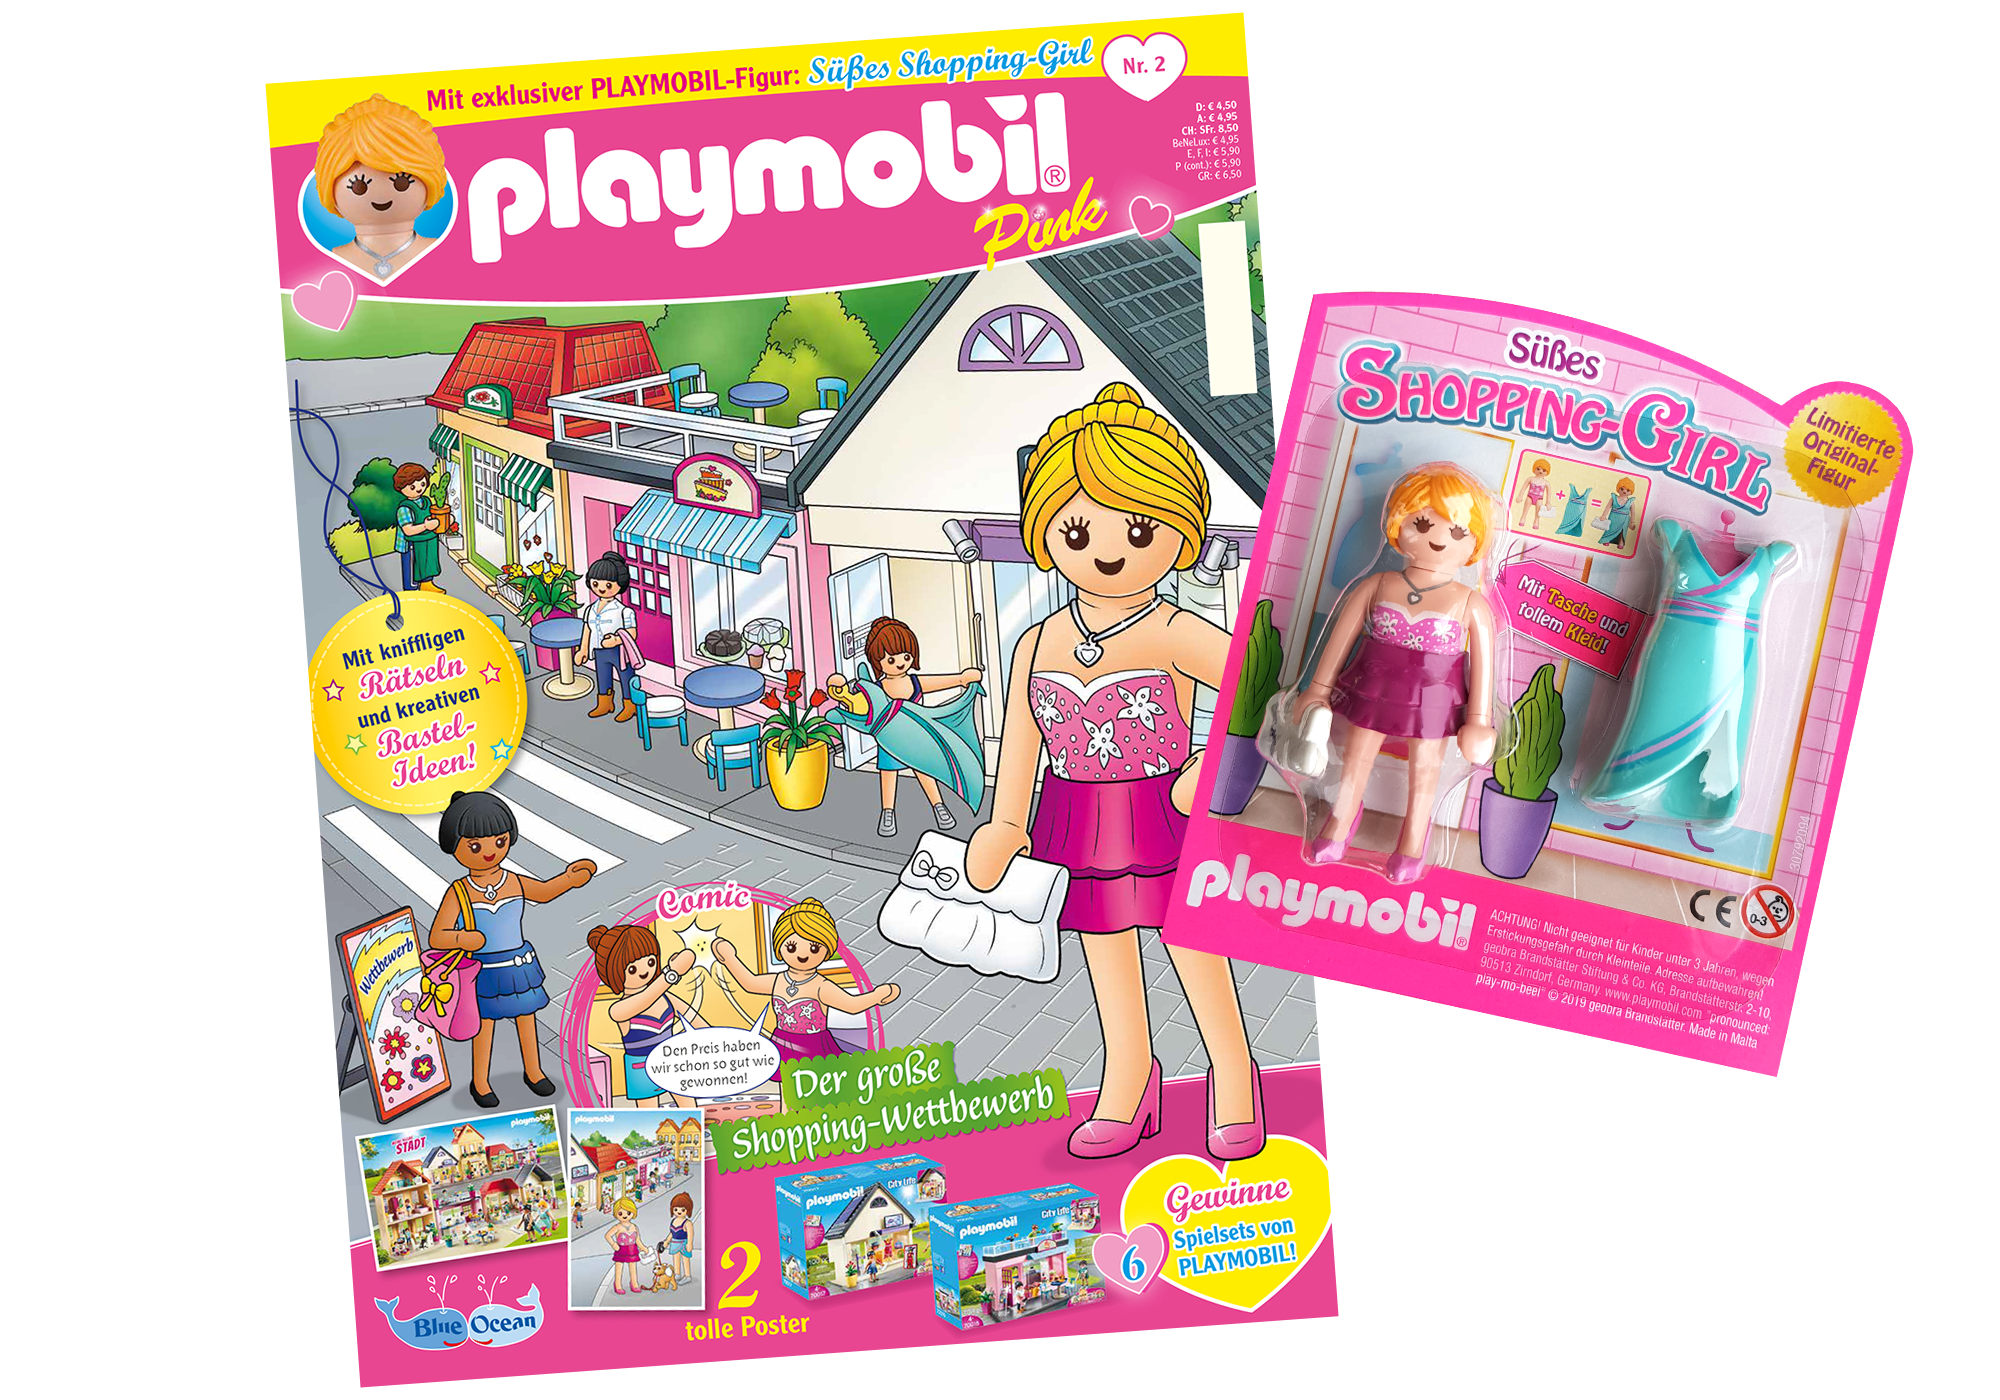 http://media.playmobil.com/i/playmobil/80621_product_detail/PLAYMOBIL-Magazin Pink 2/2019 (Heft 42)